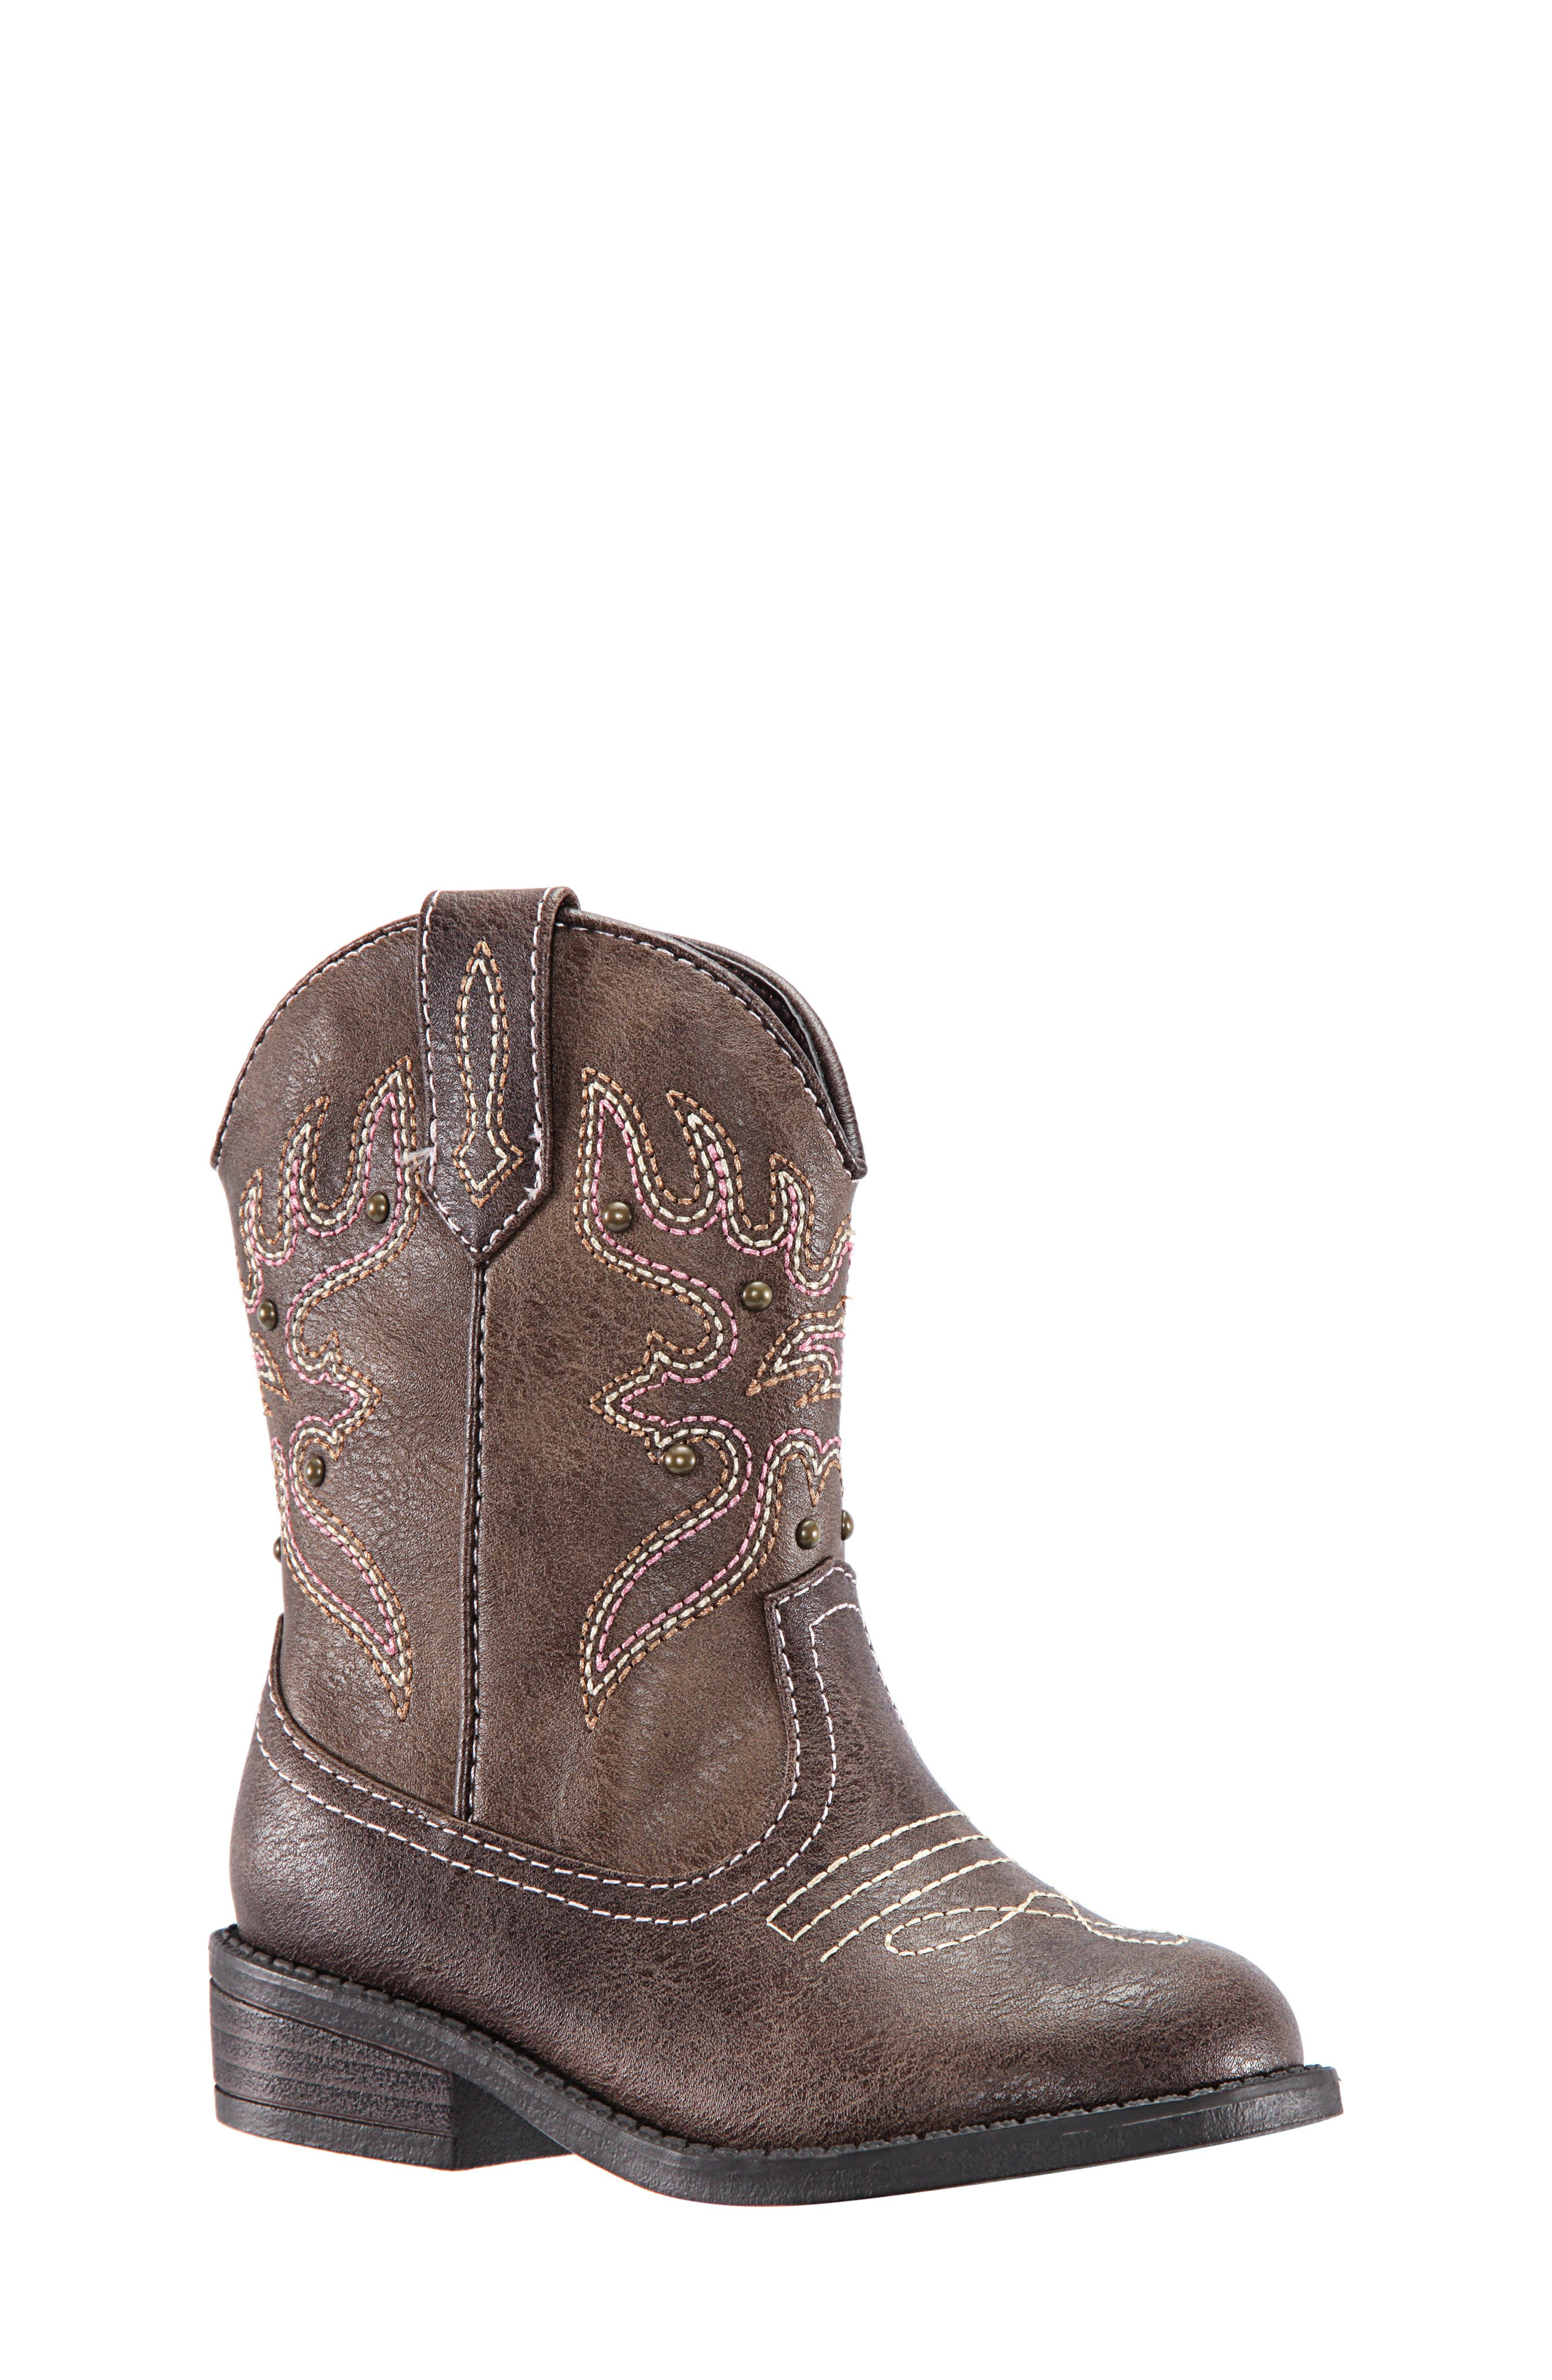 Mirabele Cowboy Boot,                         Main,                         color, BROWN